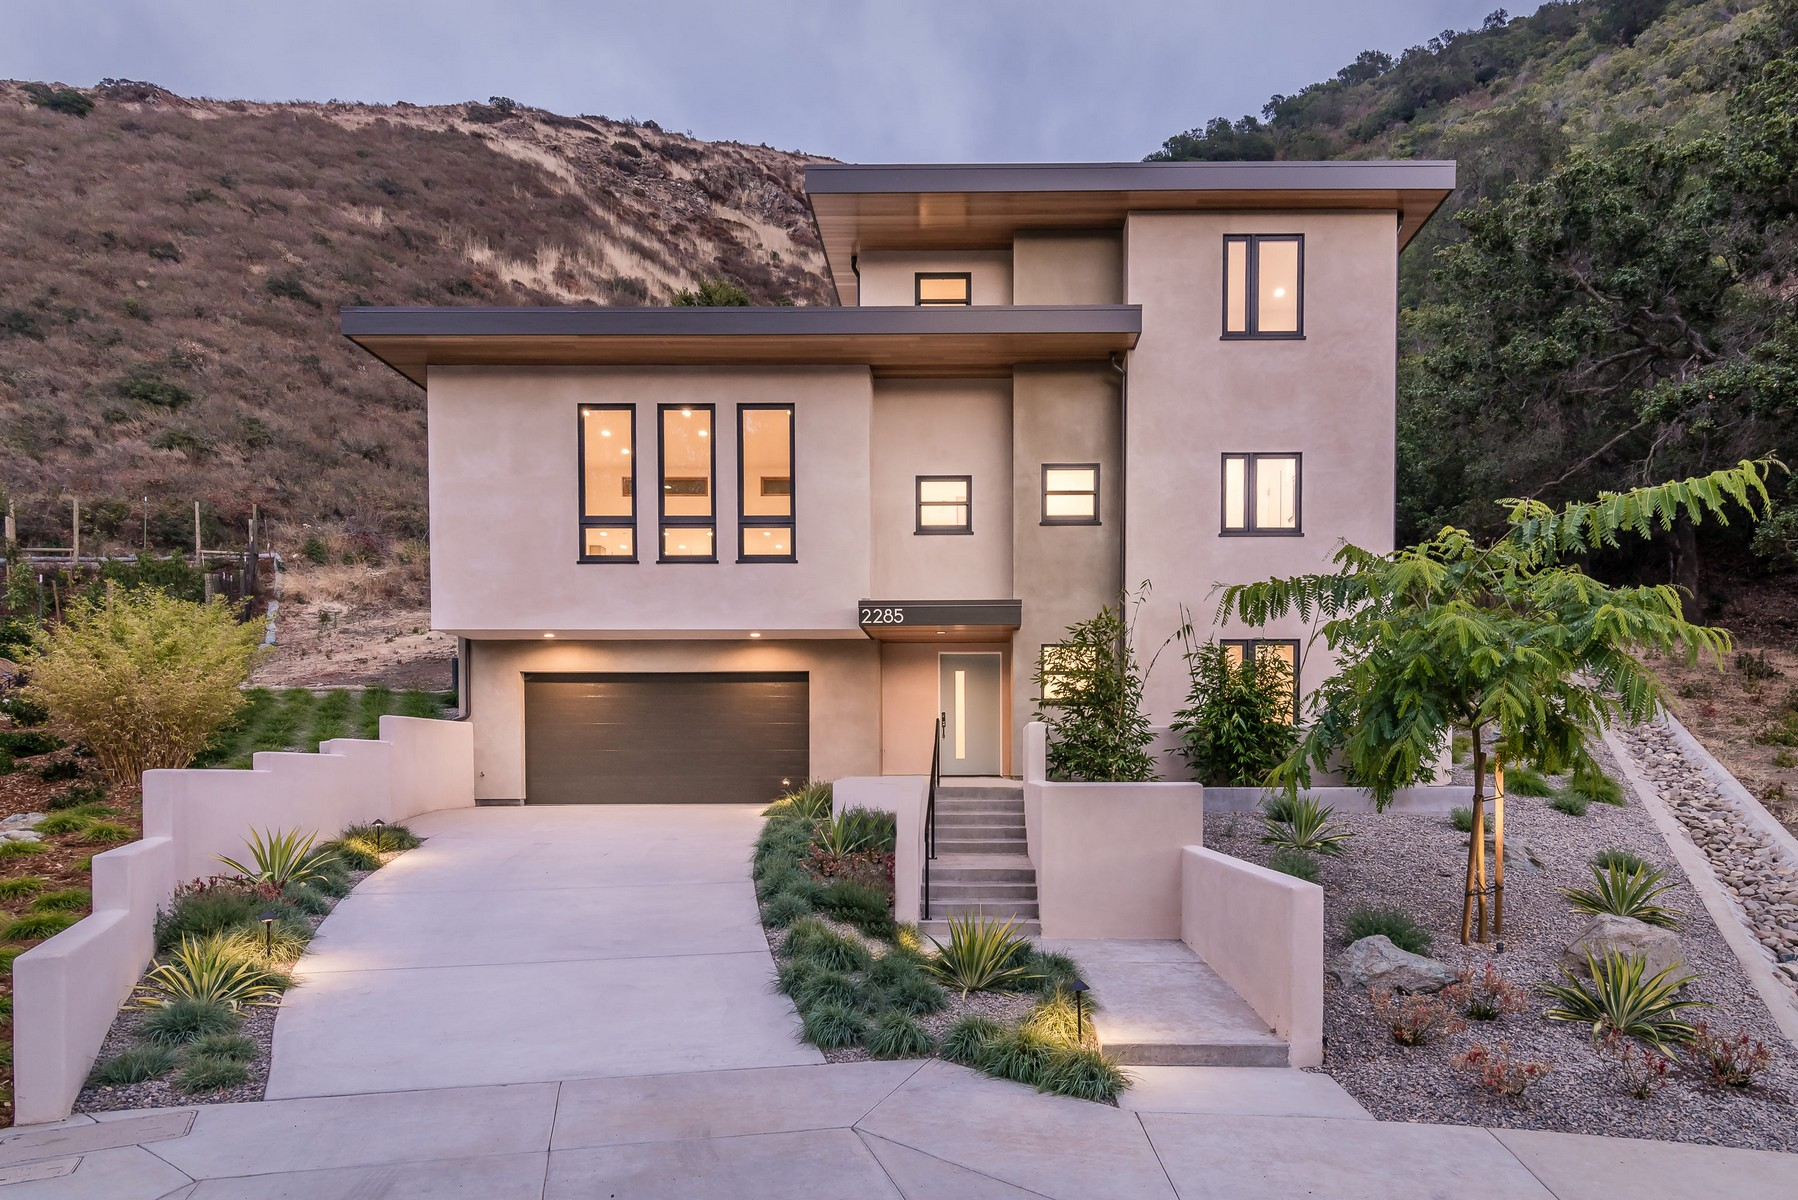 Single Family Home for Sale at Brand New Contemporary Residence 2285 San Luis Drive San Luis Obispo, California, 93401 United States